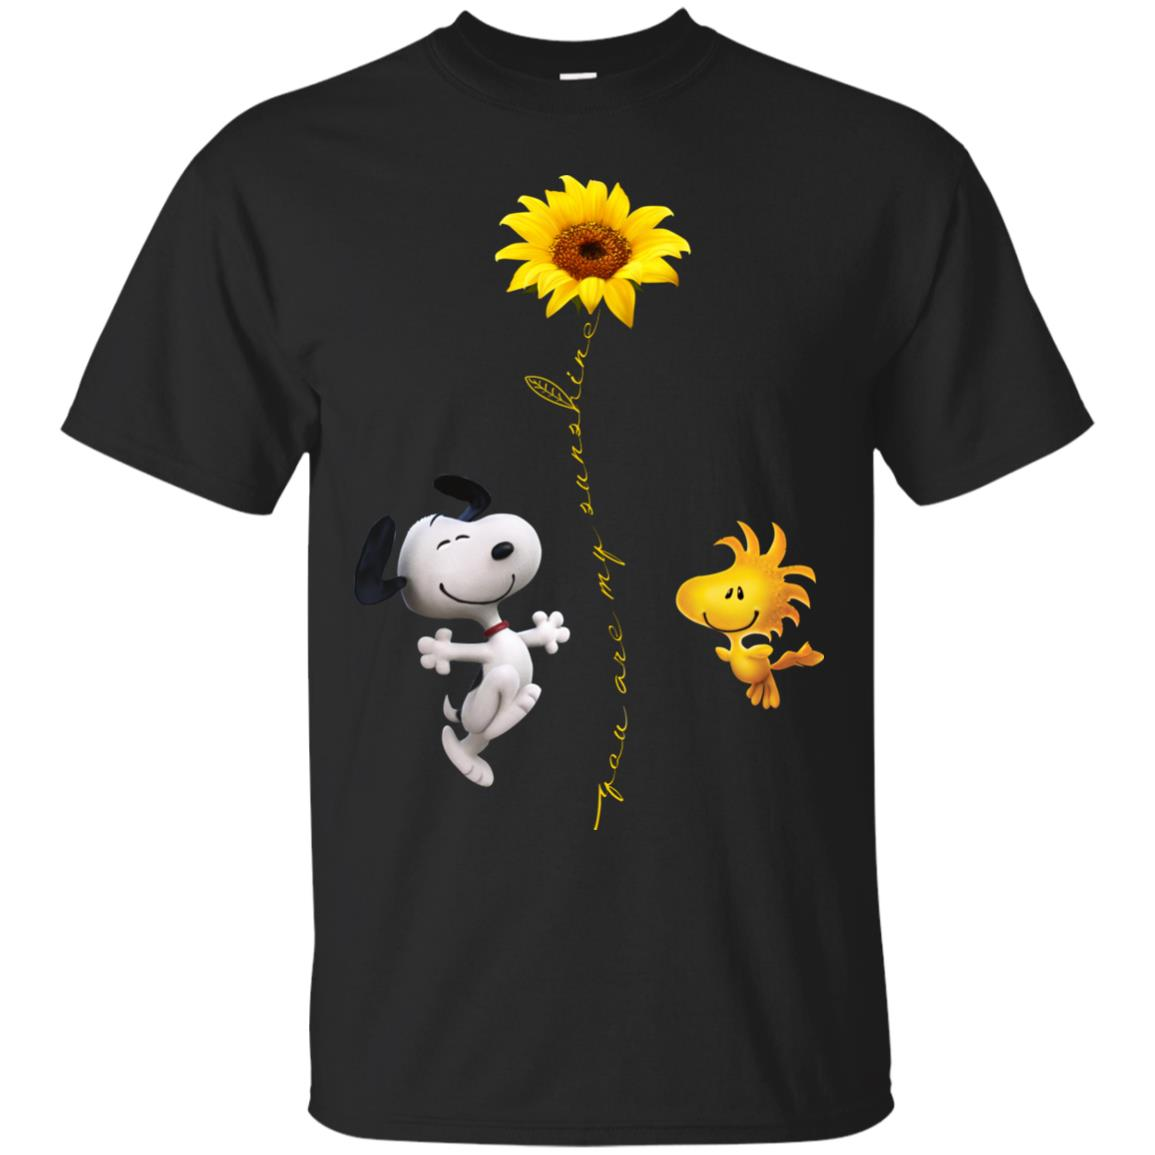 773f7c42cc76ac Snoopy and Woodstock: You are my sunshine t shirt, ls, sweatshirt -  RobinPlaceFabrics